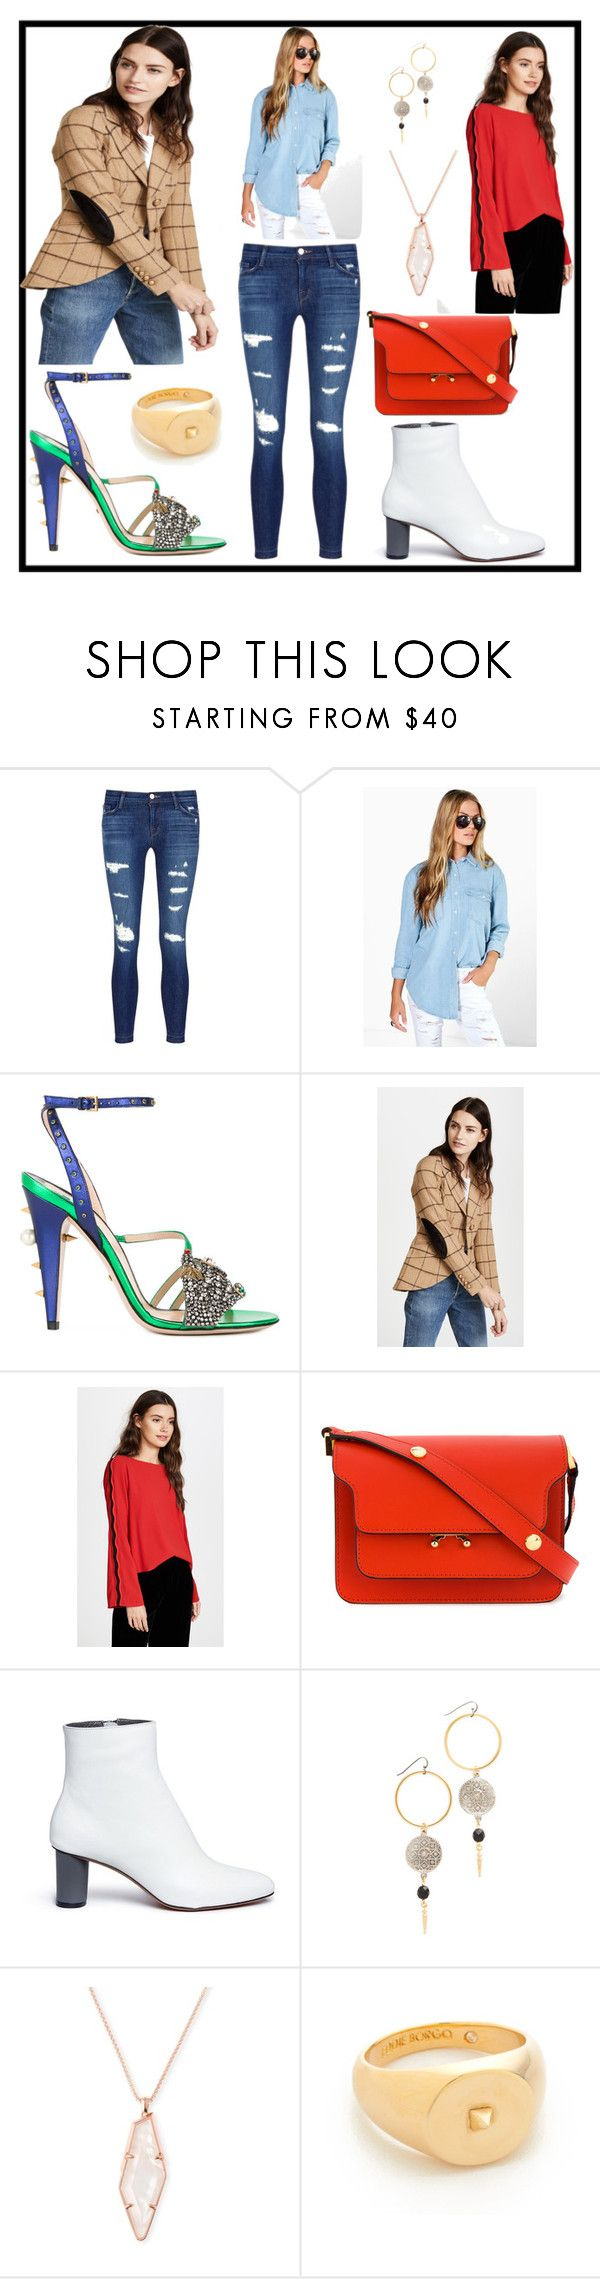 """""""Untitled #1038"""" by racheal-taylor ❤ liked on Polyvore featuring J Brand, Boohoo, Gucci, Smythe, Ramy Brook, Marni, Gray Matters, Ben-Amun, Kendra Scott and Eddie Borgo"""